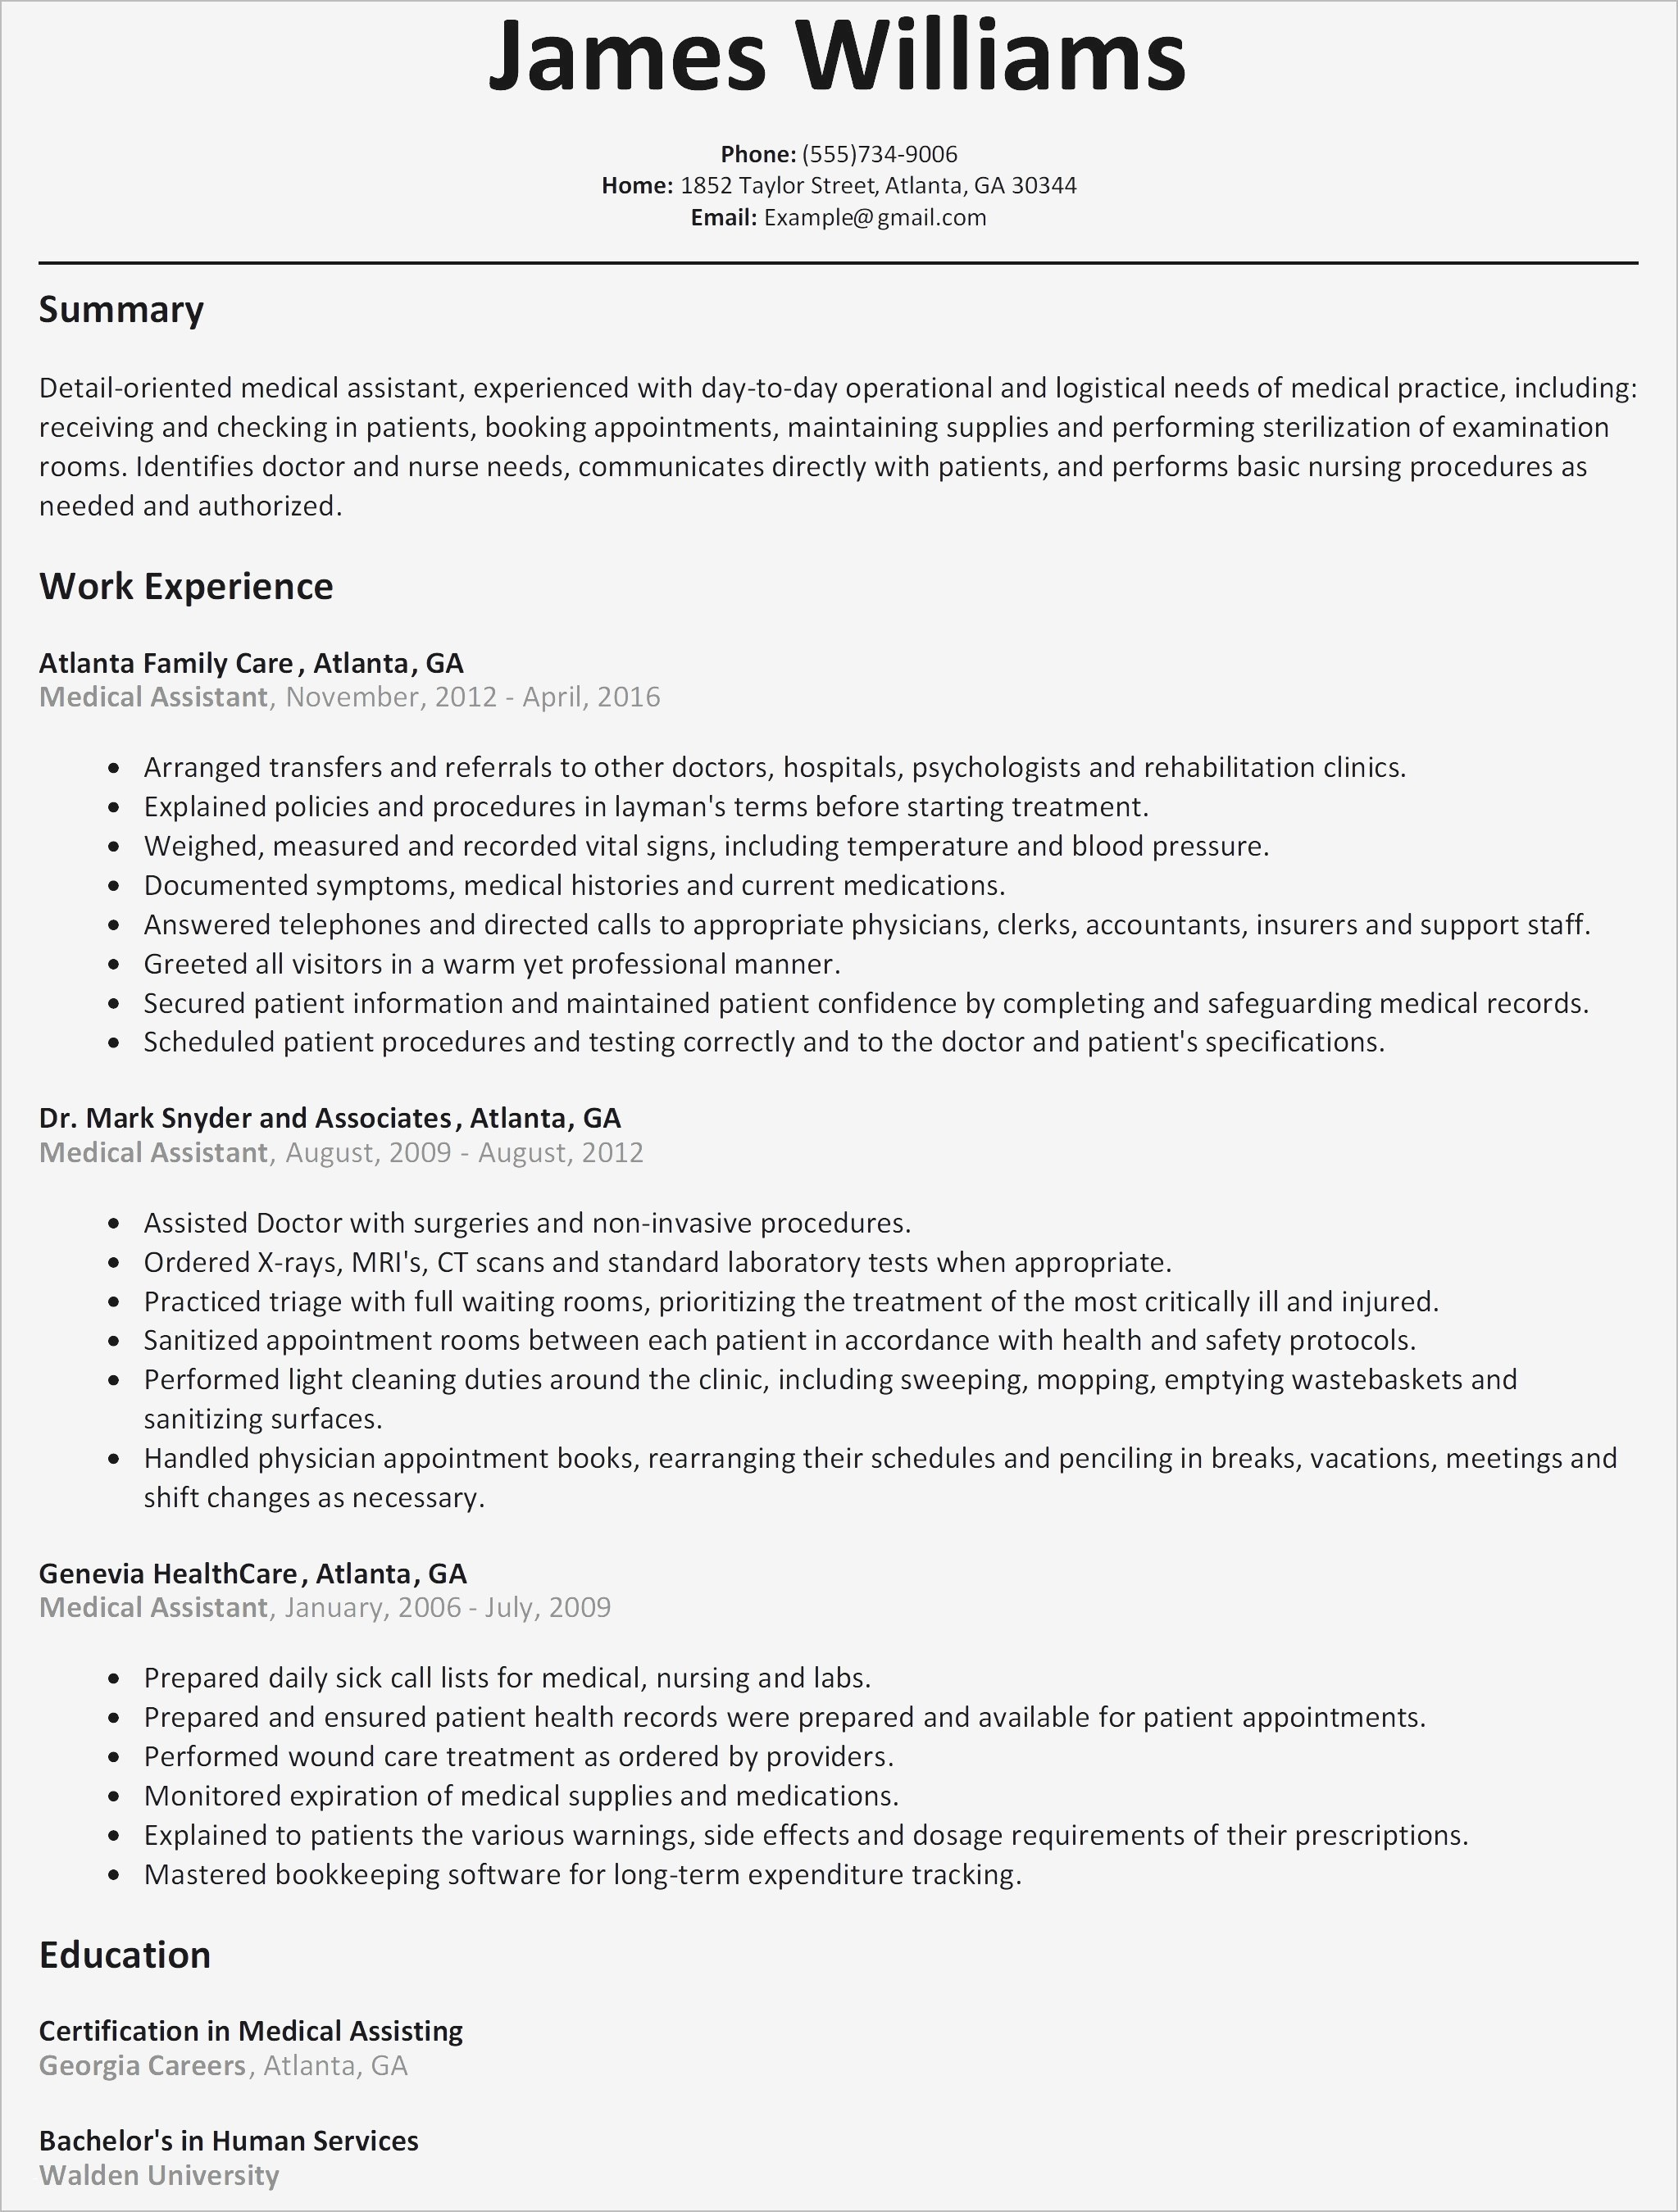 Operations Manager Cover Letter Template - Cover Letter Tips Experience Levelmanager3 Mon Mistakes On